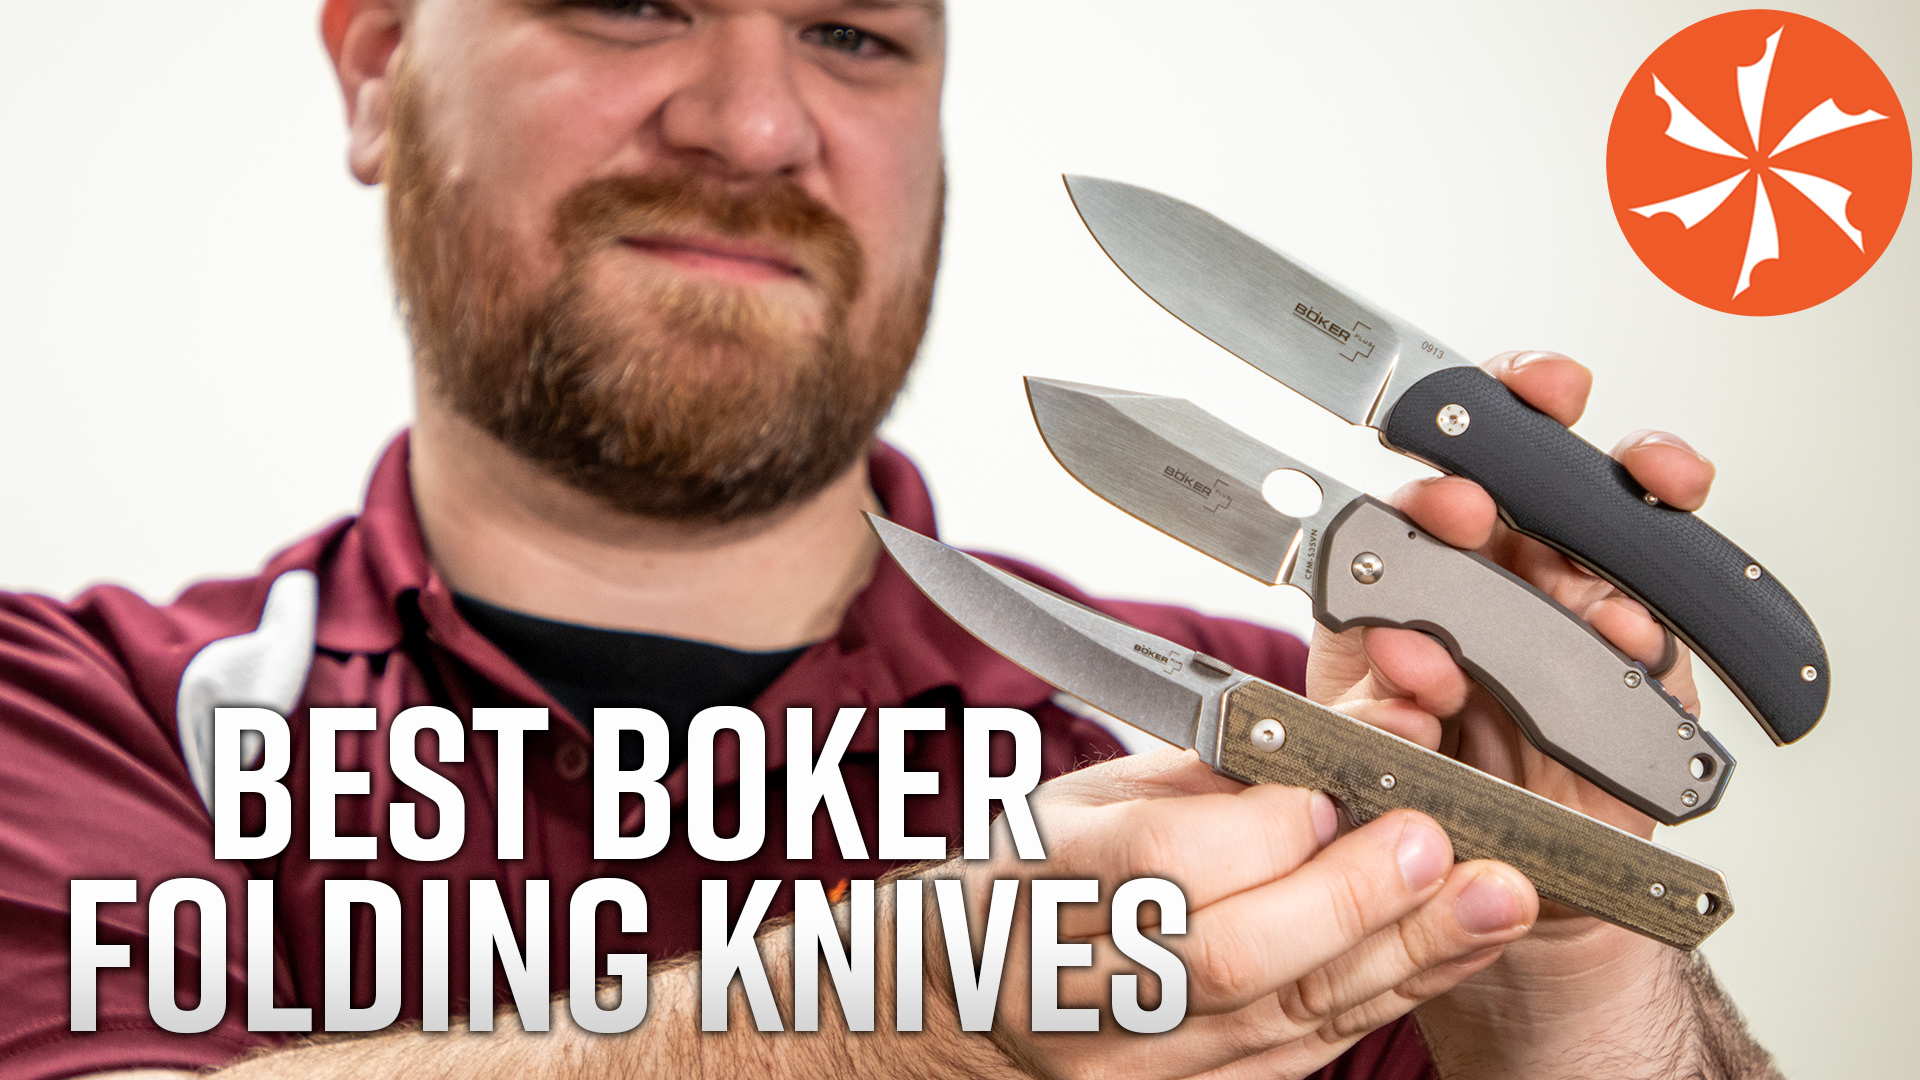 Best Boker Folding Knives